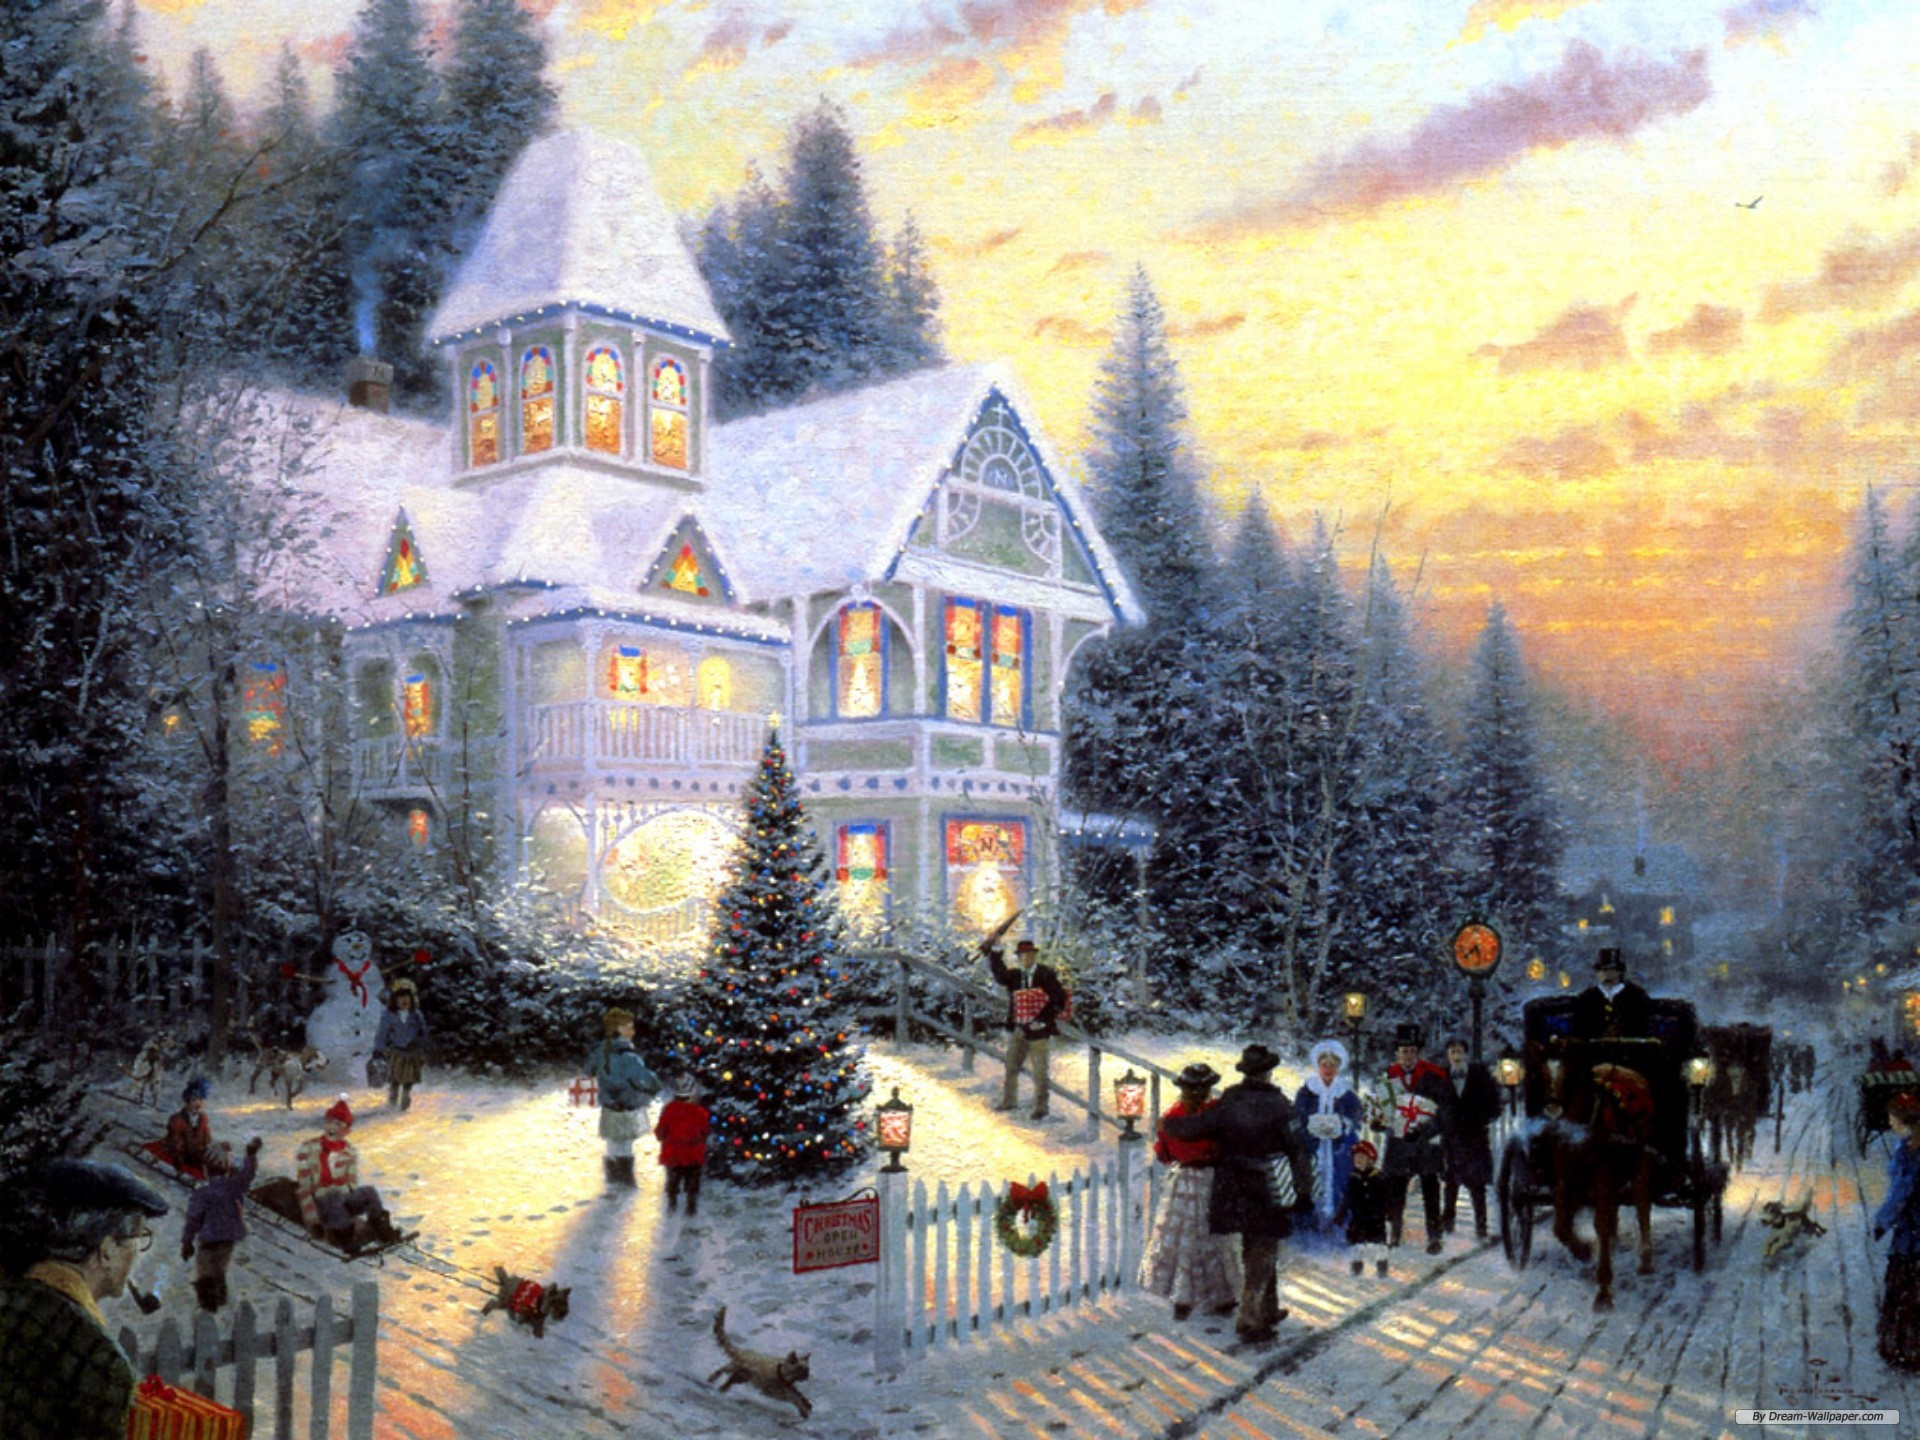 Wallpaper   Holiday wallpaper   Christmas Eve Painting 1920x1440